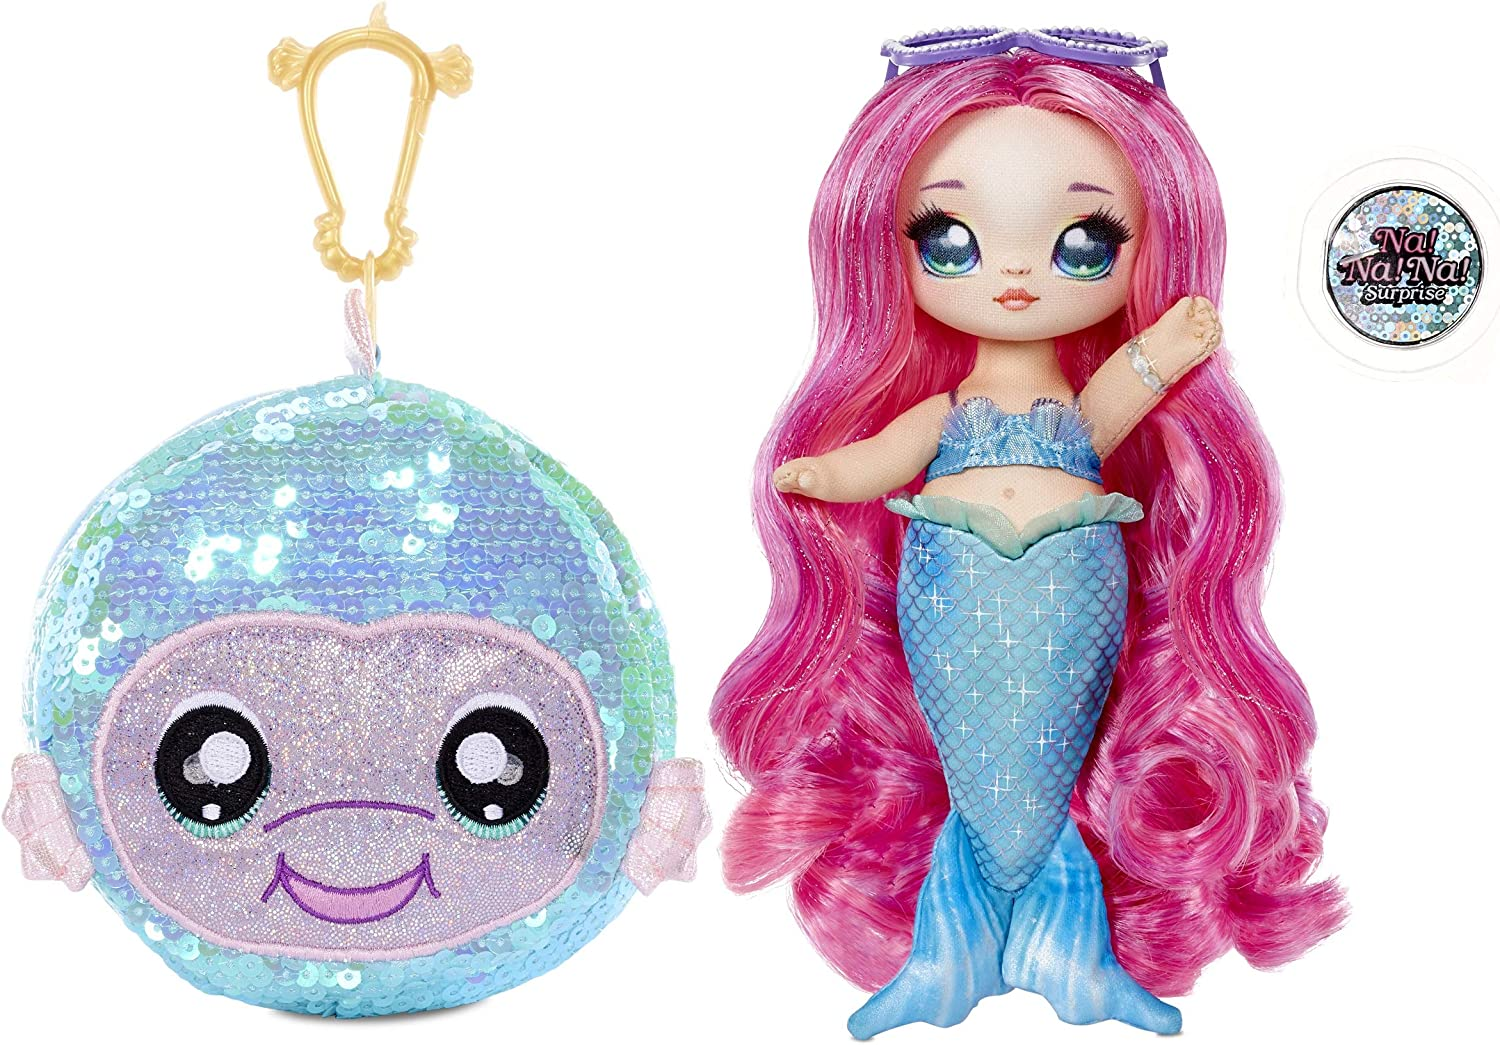 """Na Na Na Surprise 2-in-1 Fashion Doll and Sparkly Sequined Purse Sparkle Series – Marina Jewels, 7.5"""" Mermaid Doll"""